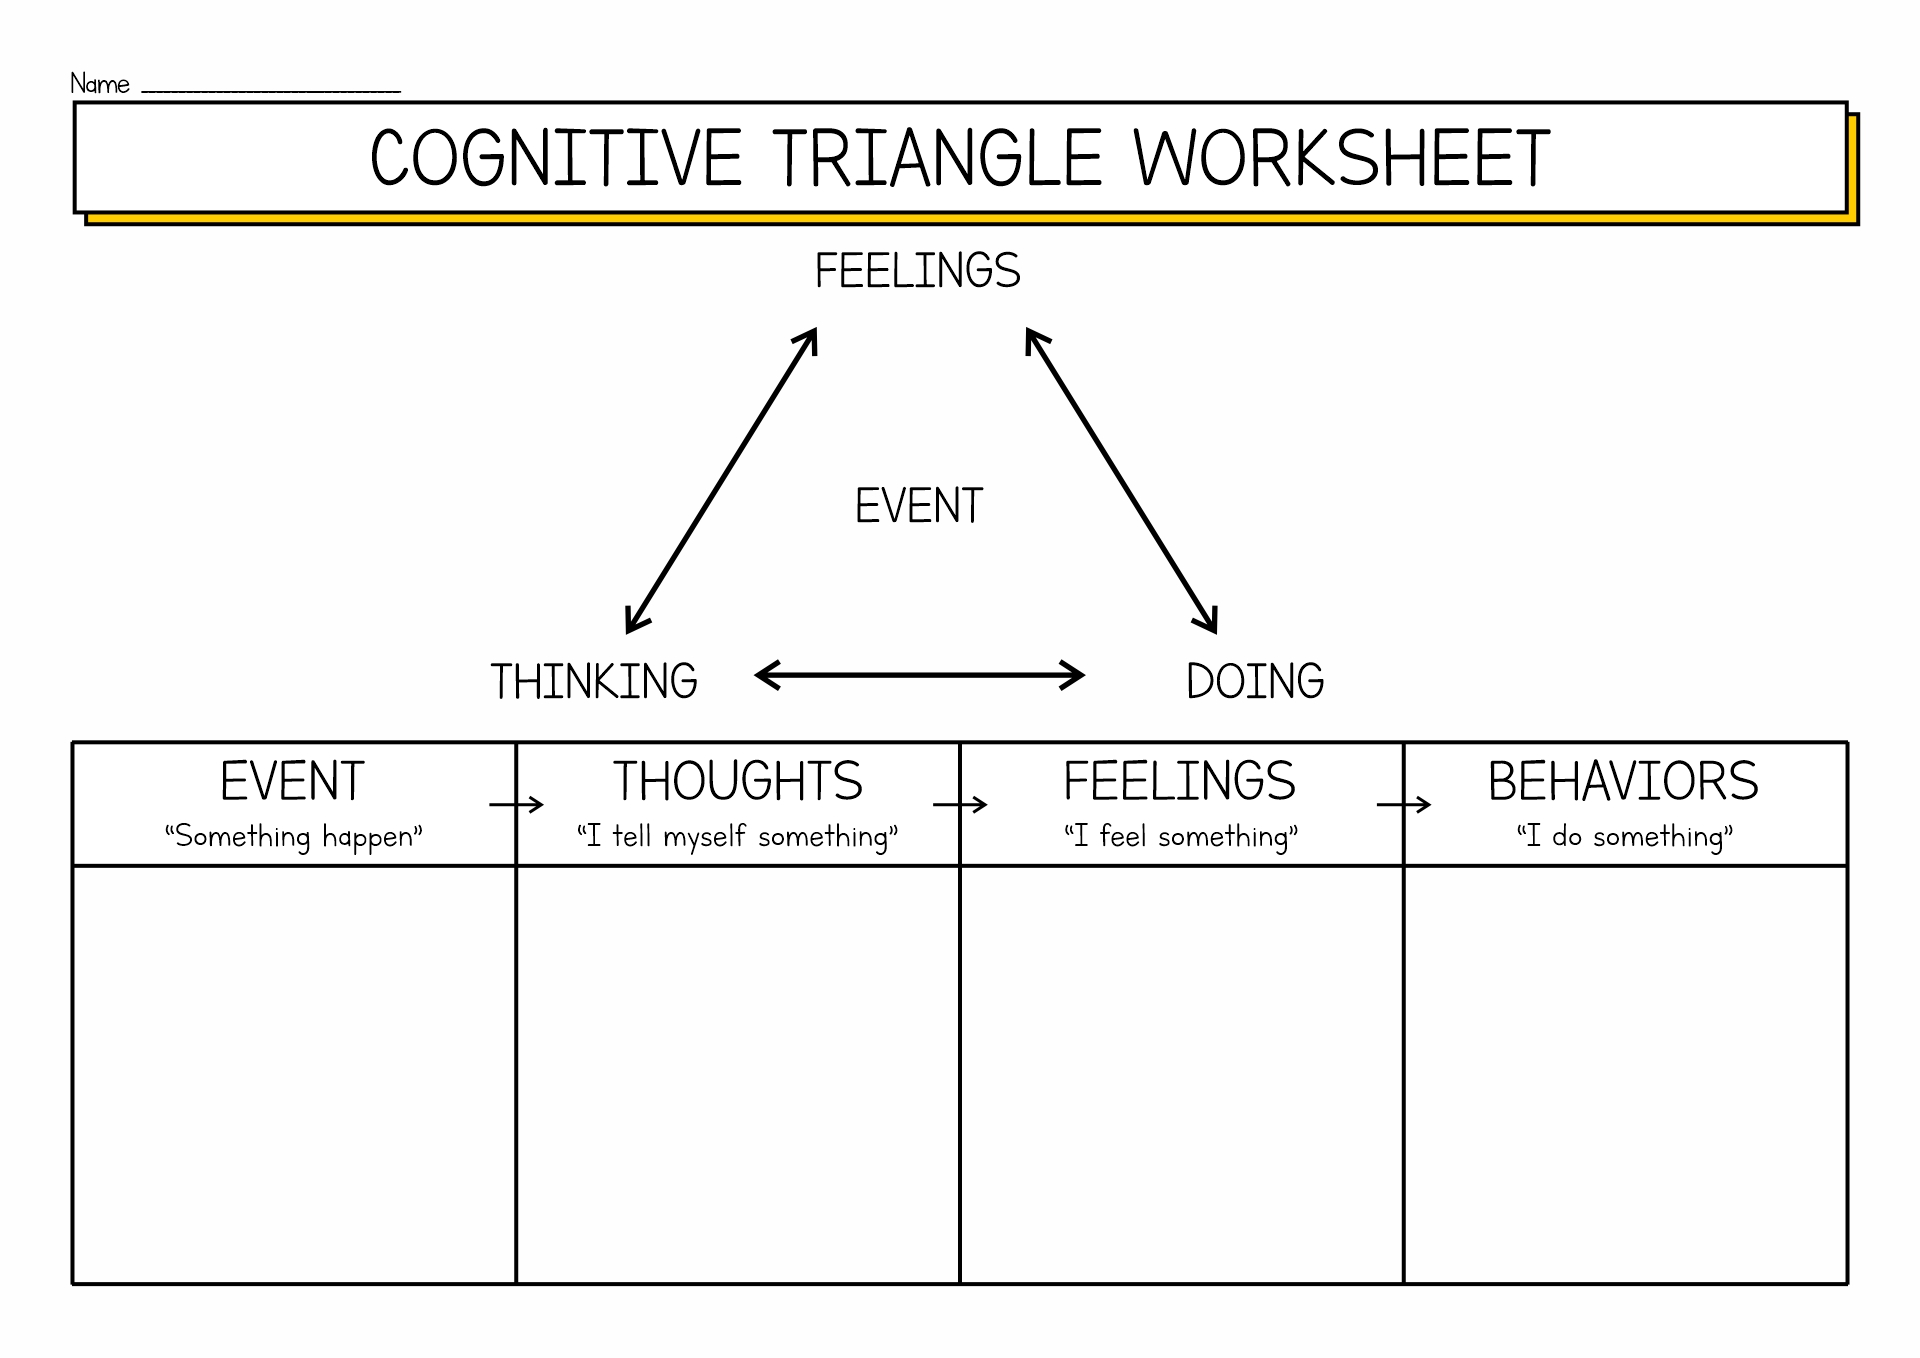 17 Best Images Of Cognitive Behavioral Thought Worksheets